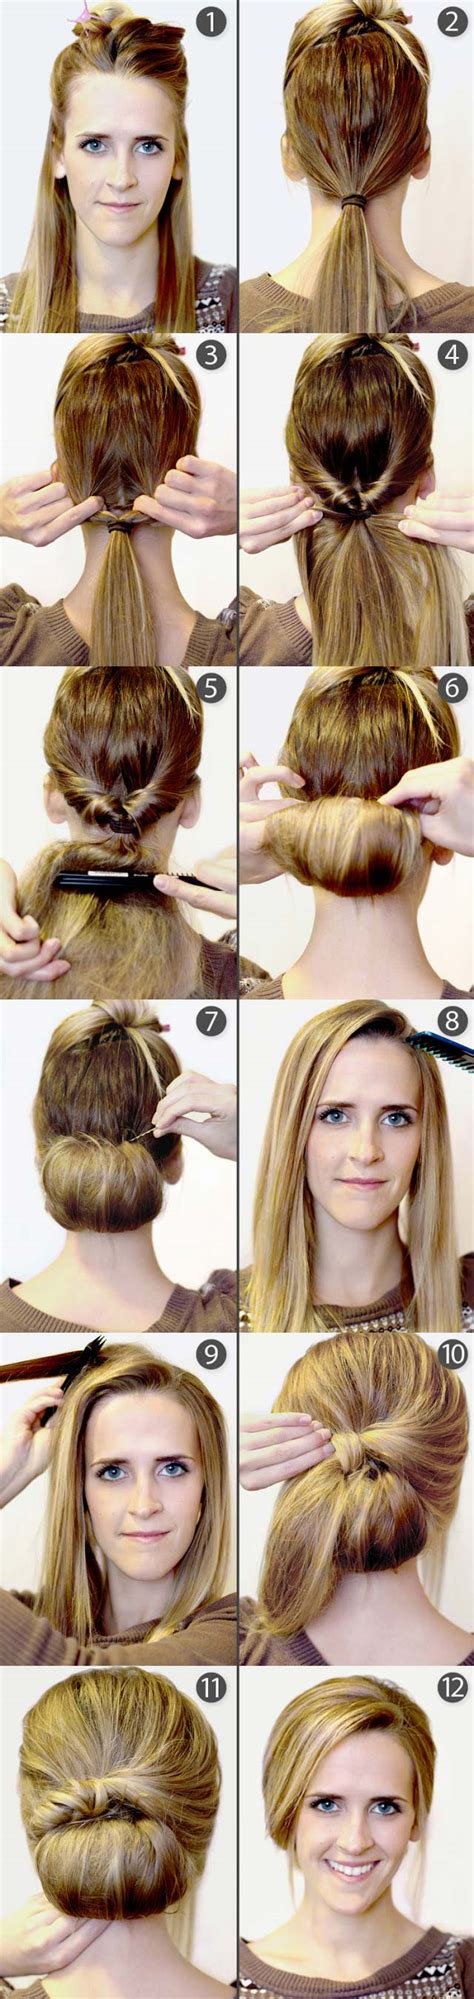 hairstyles diy 9 pretty diy hairstyles with step by step tutorials